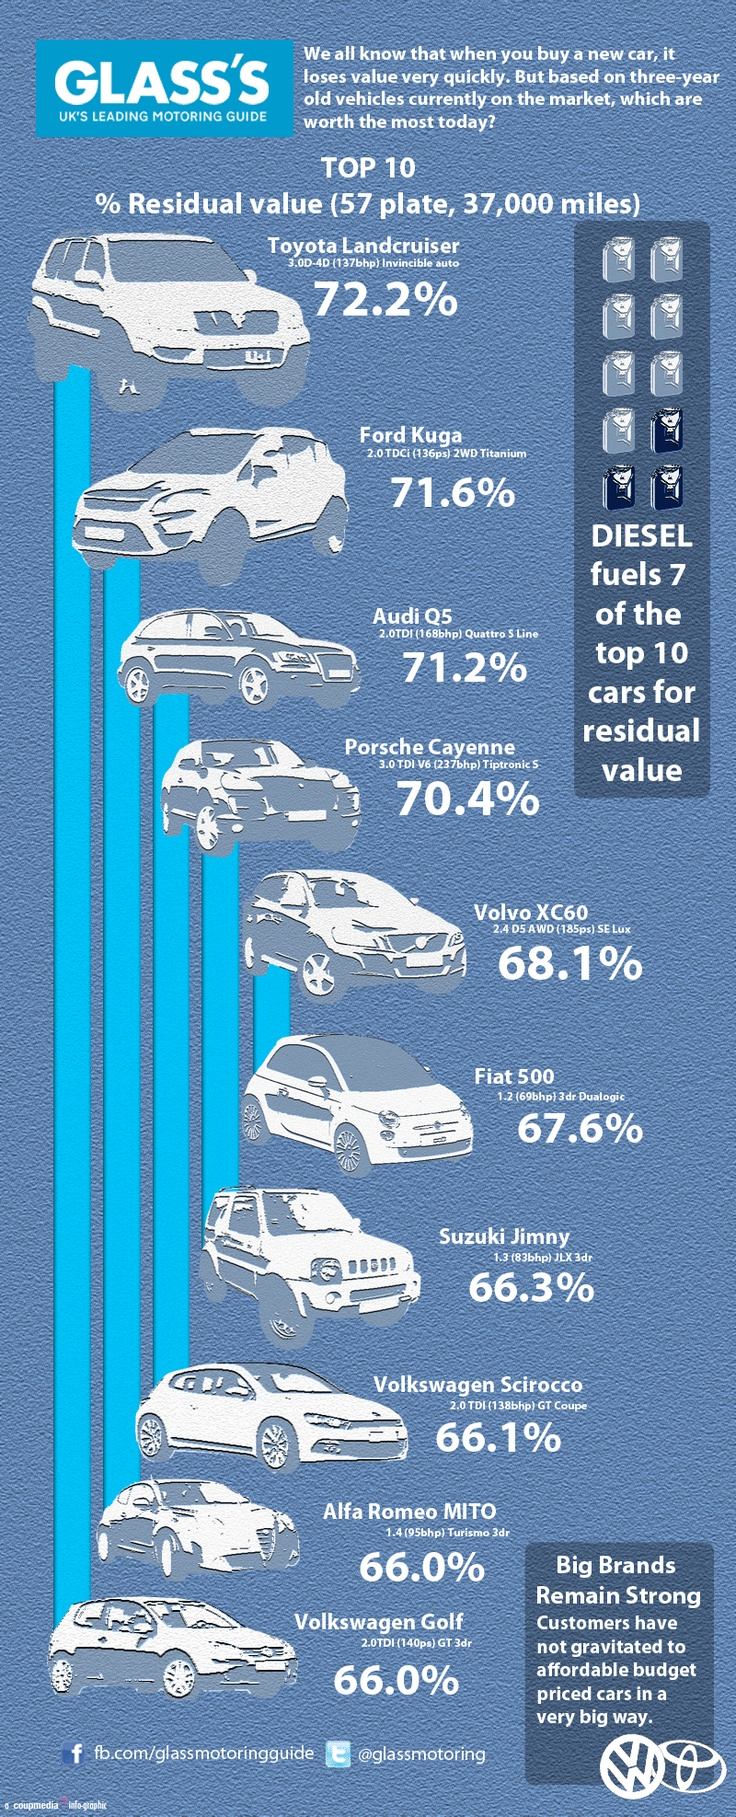 Hmm, how do we make residual car values seem even remotely interesting? Someone call Coup Media!! NOW!